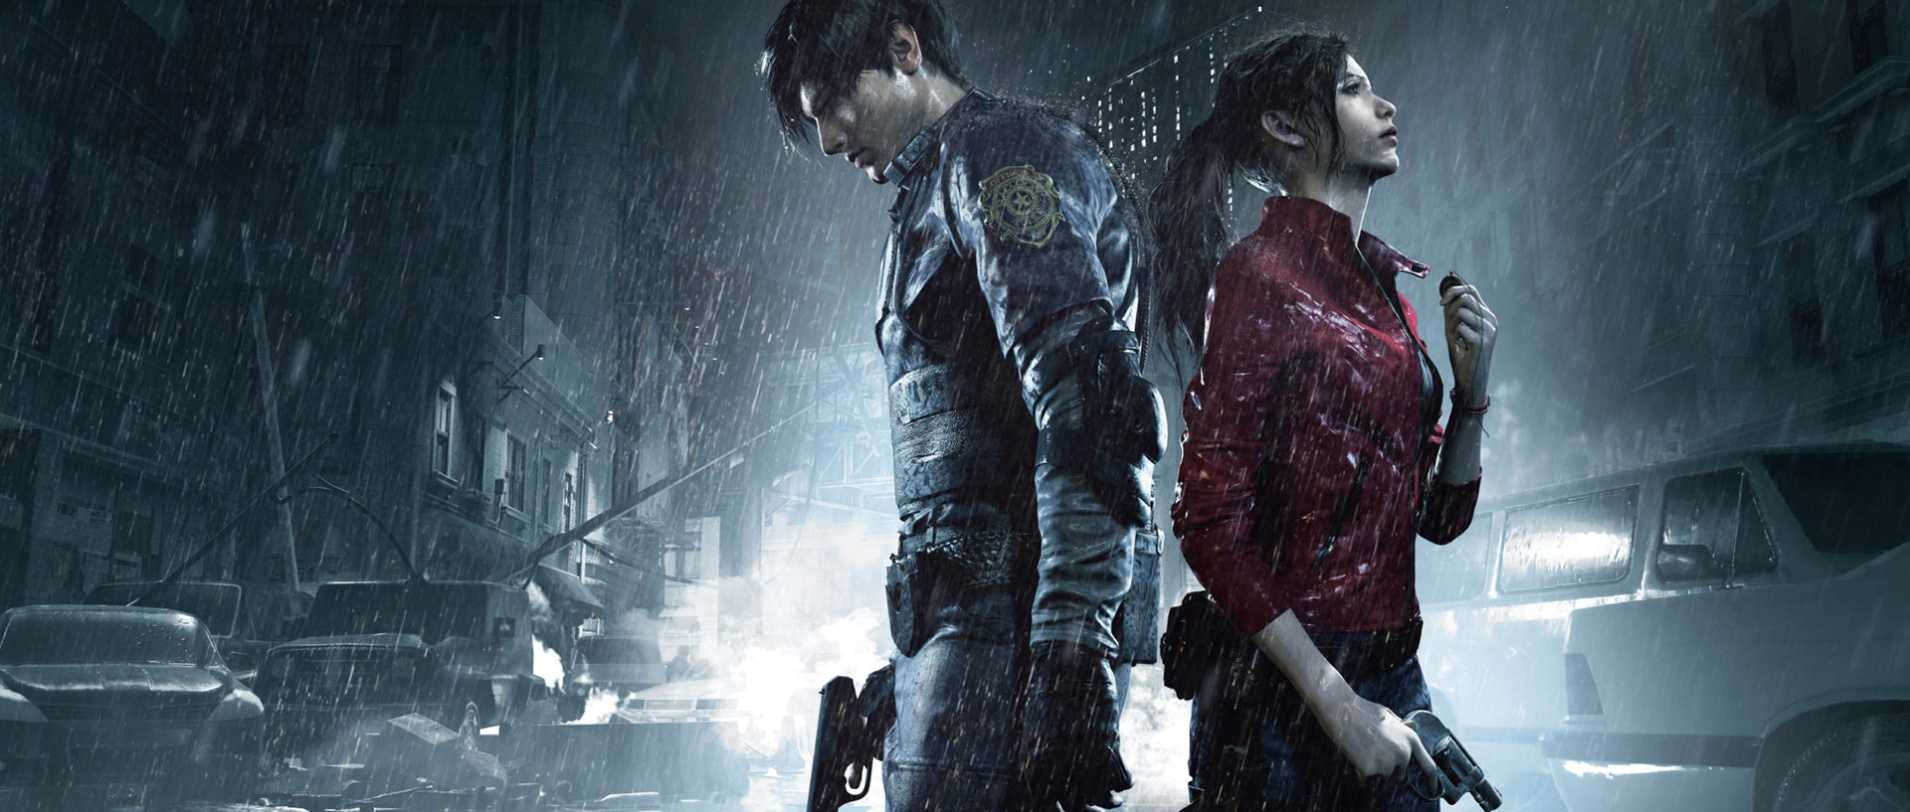 Resident Evil 2 Remake - Poster - Leon S. Kennedy - Claire Redfield